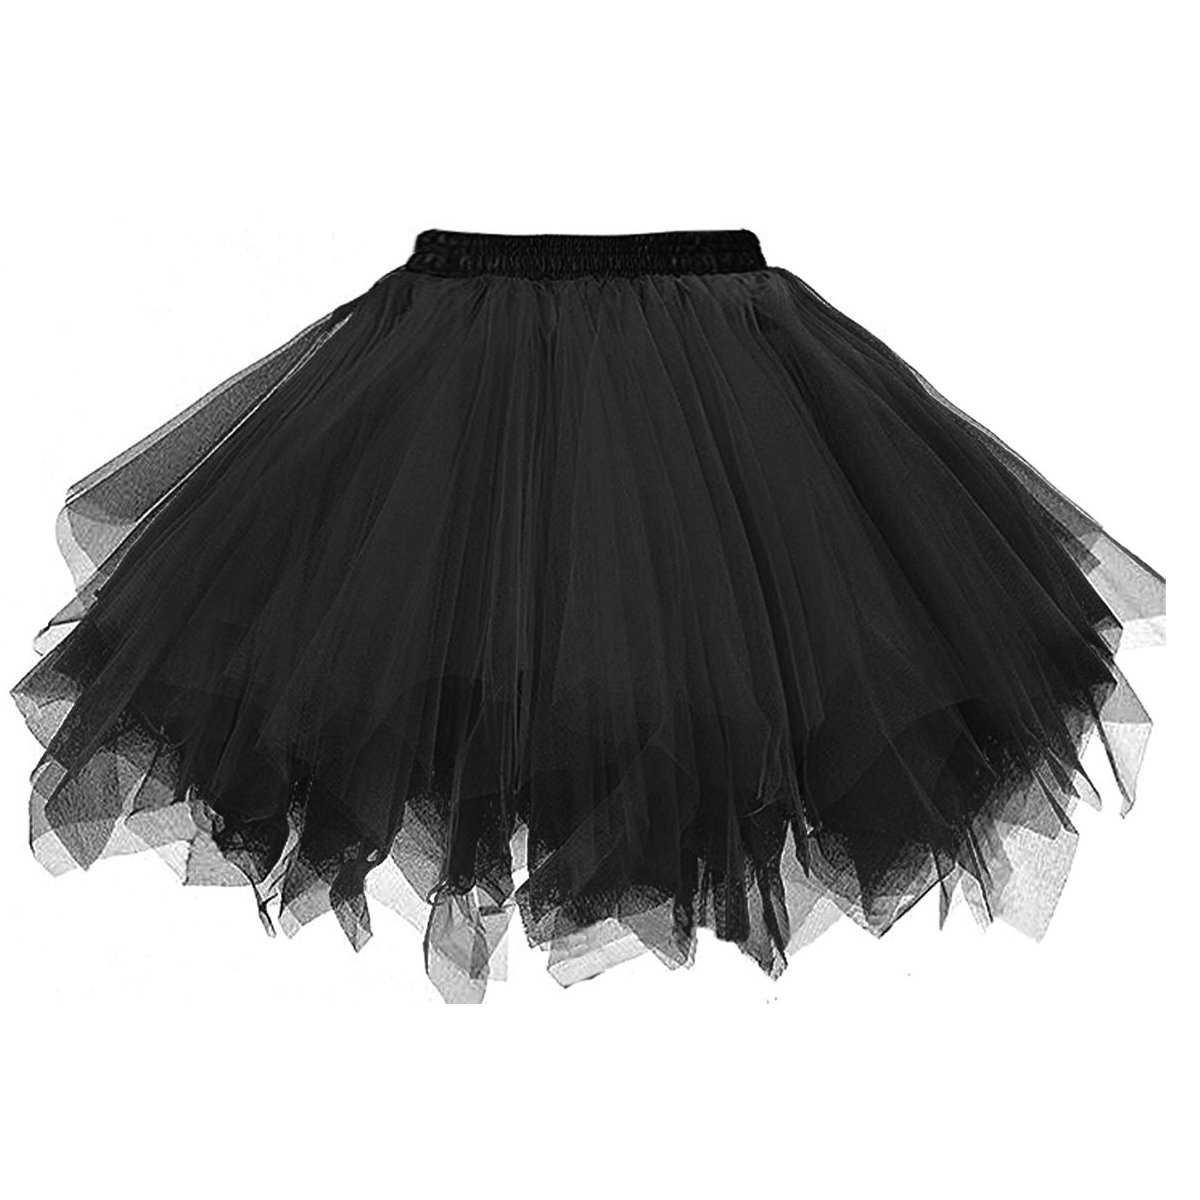 Topdress Women's 1950s Vintage Tutu Petticoat Ballet Bubble Skirt (26 Colors) Black M by Topdress